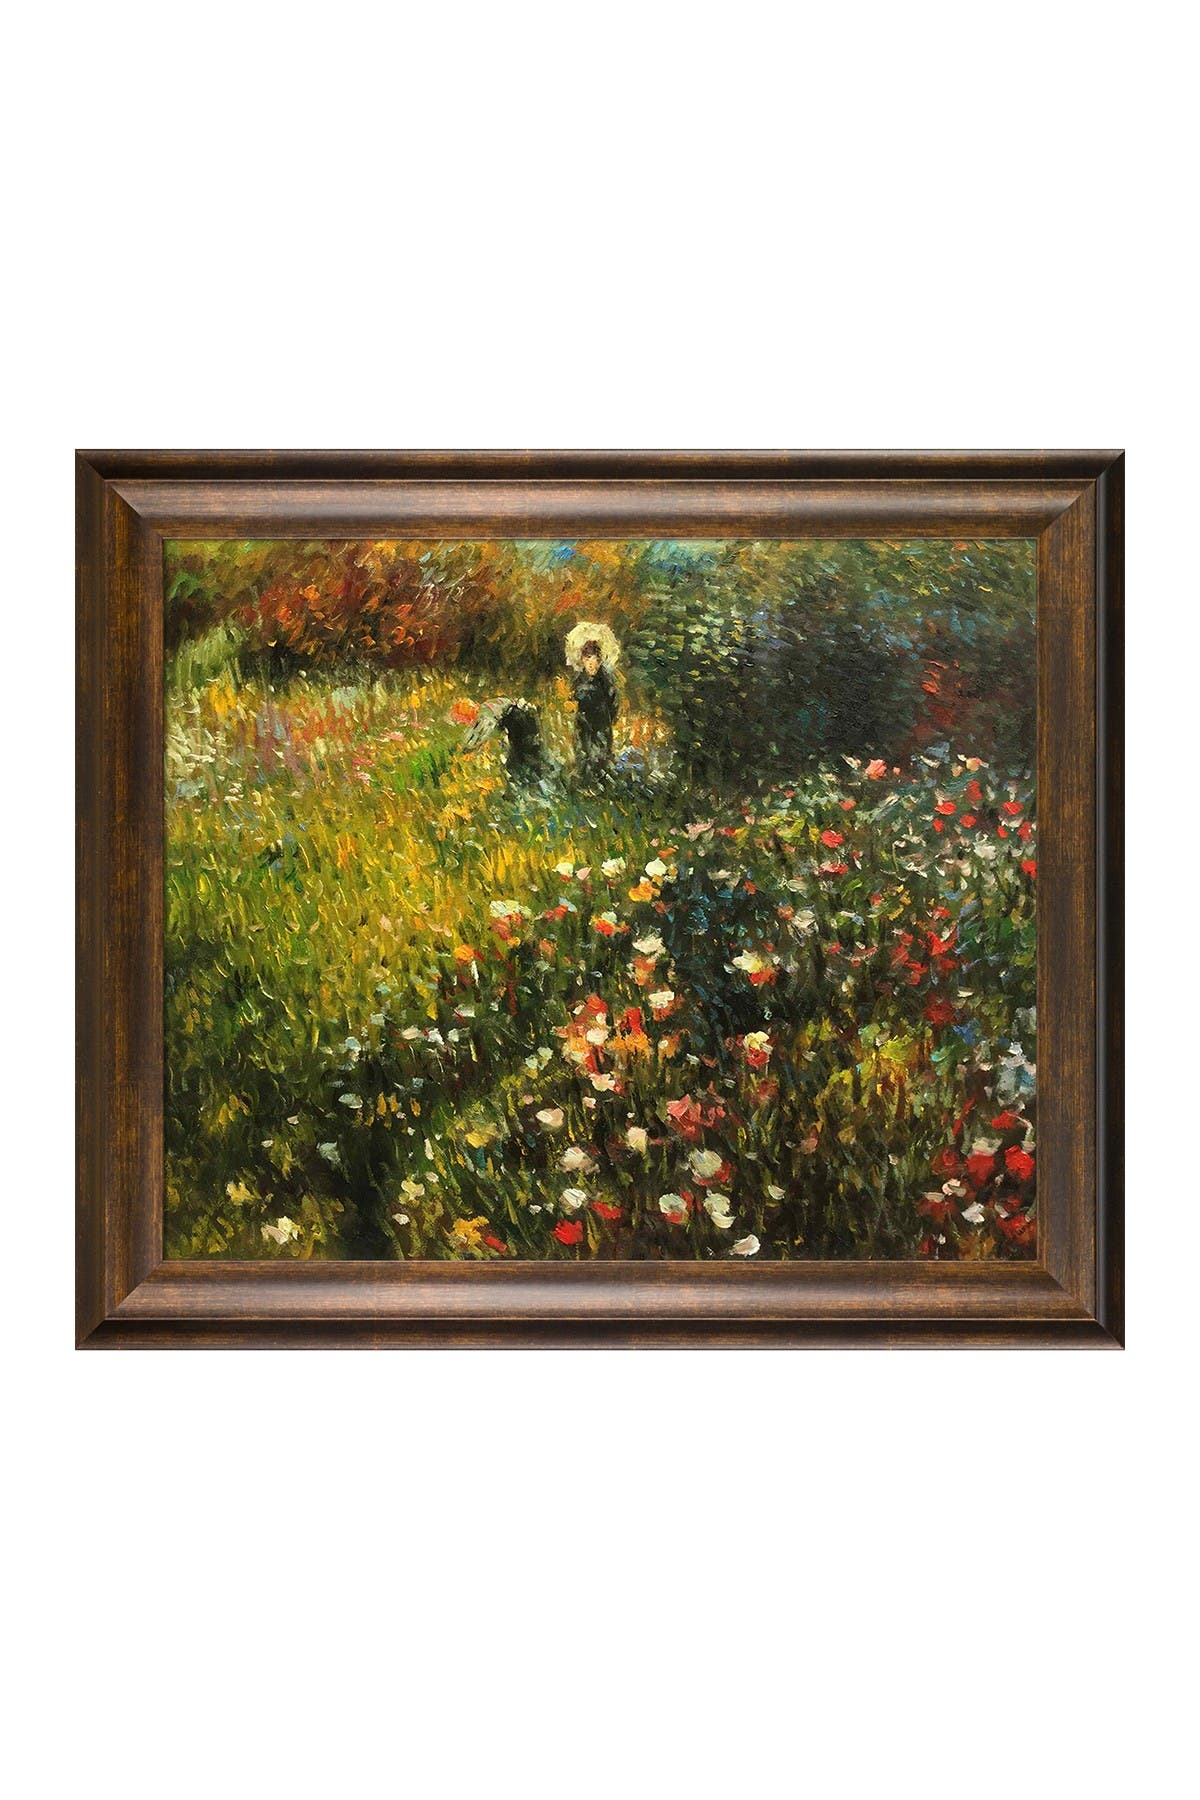 Image of Overstock Art Woman with a Parasol in a Garden (Frau mi Sonnenschirm) Framed Oil ReproductionWall Art by Pierre-Auguste Renoir